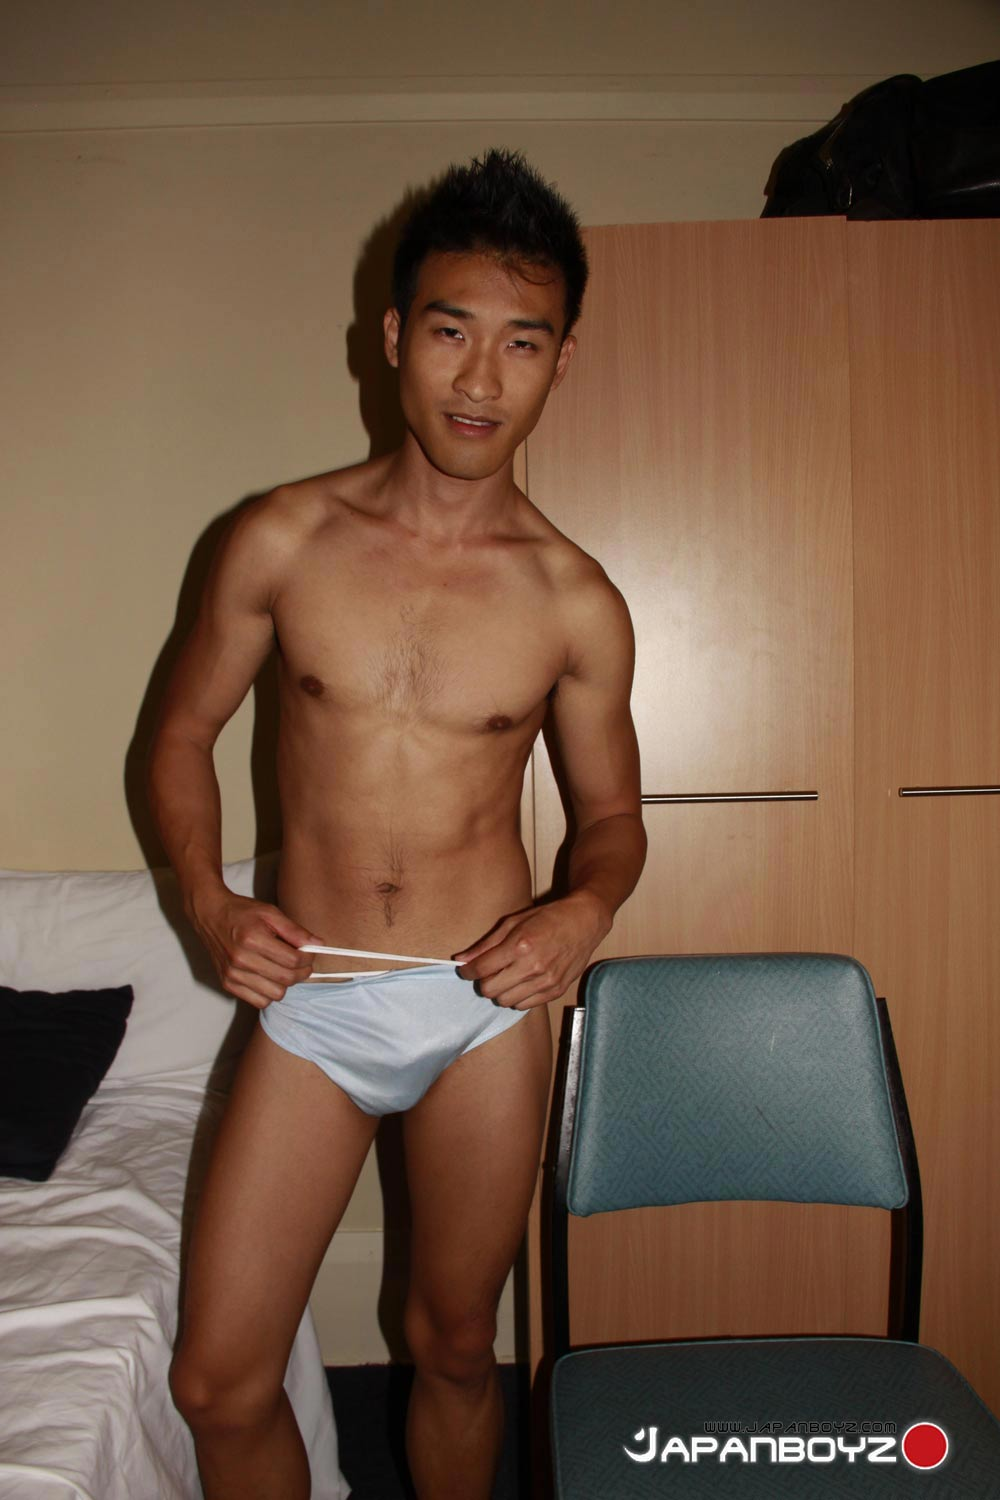 Asian guys in underwear